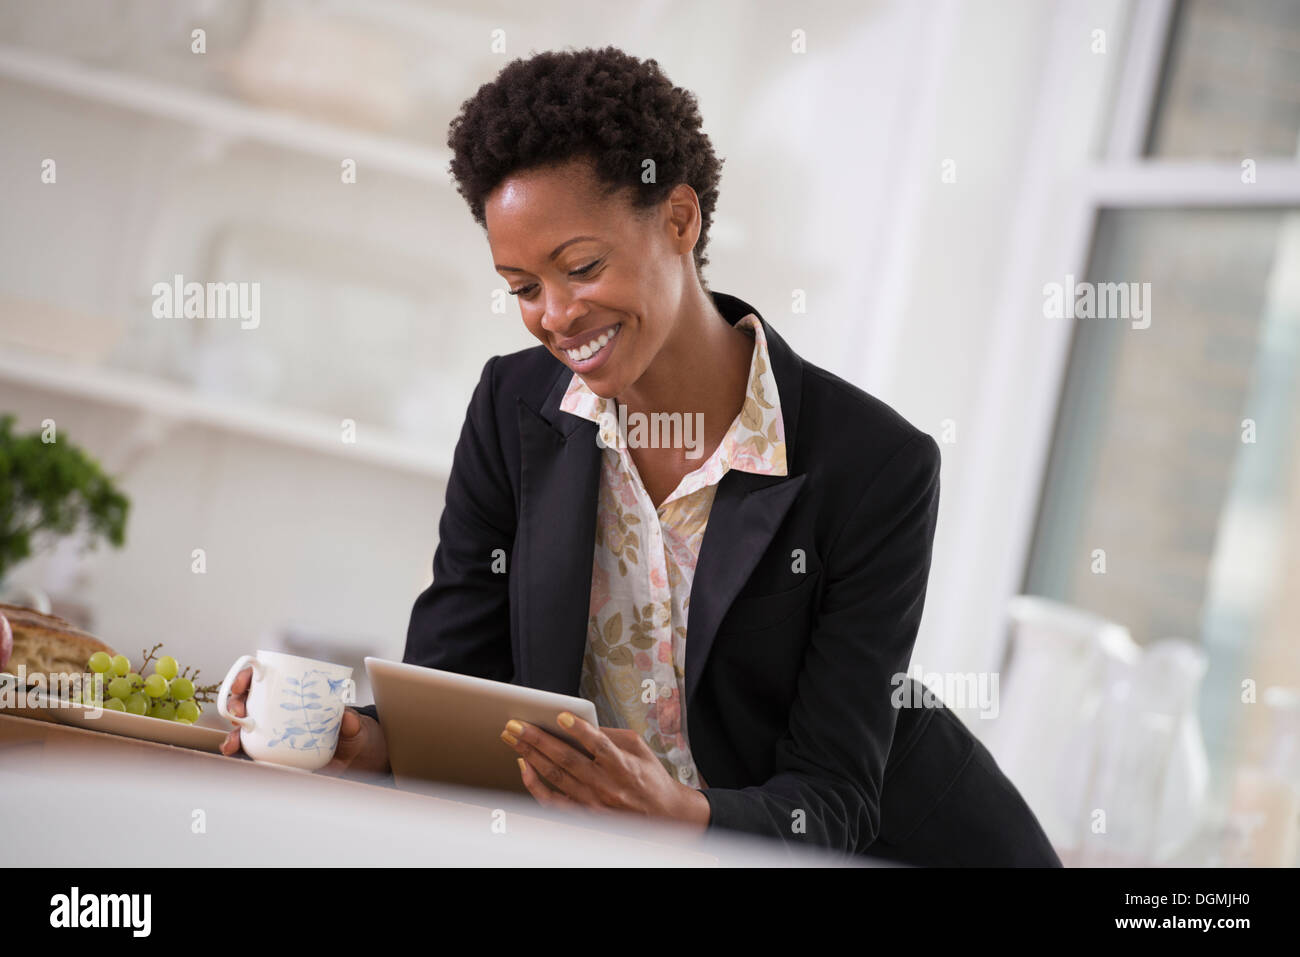 Business people. A woman in a black jacket using a digital tablet. Stock Photo